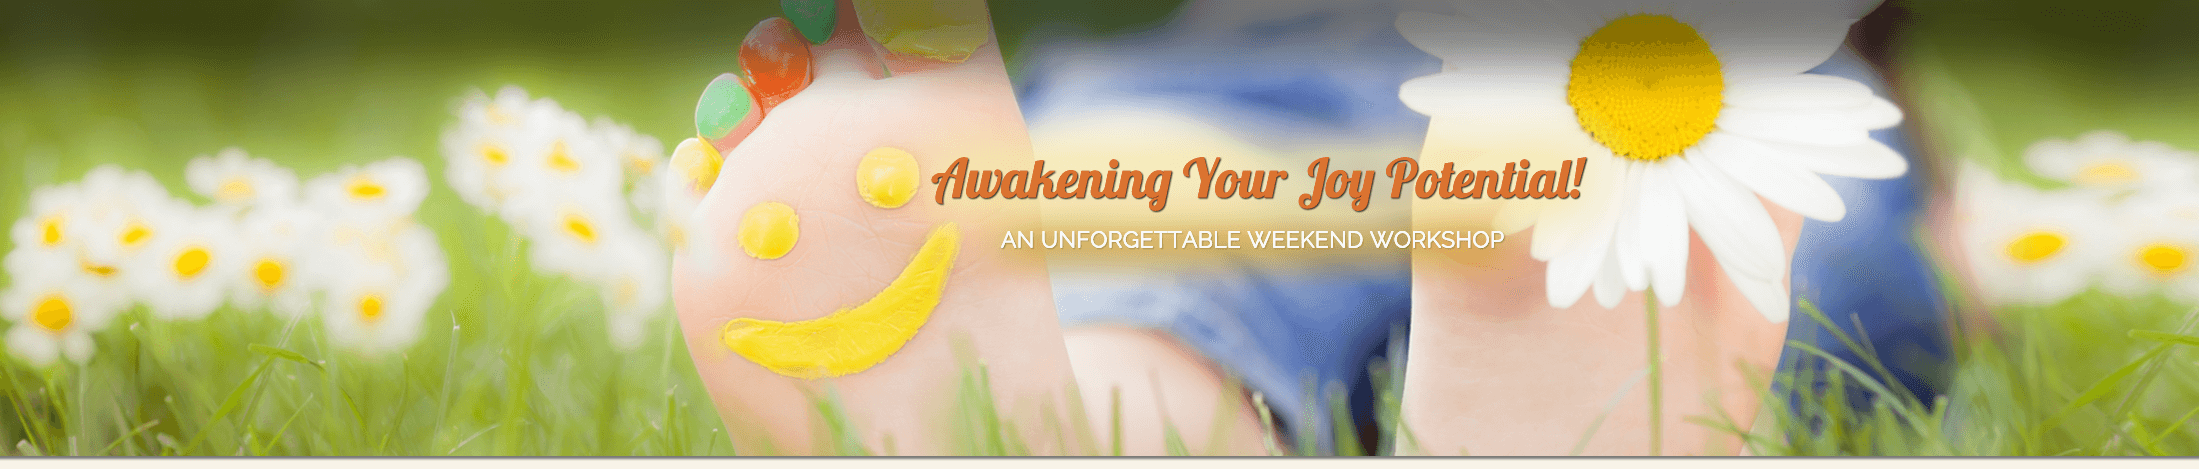 Awakening Your Joy Potential